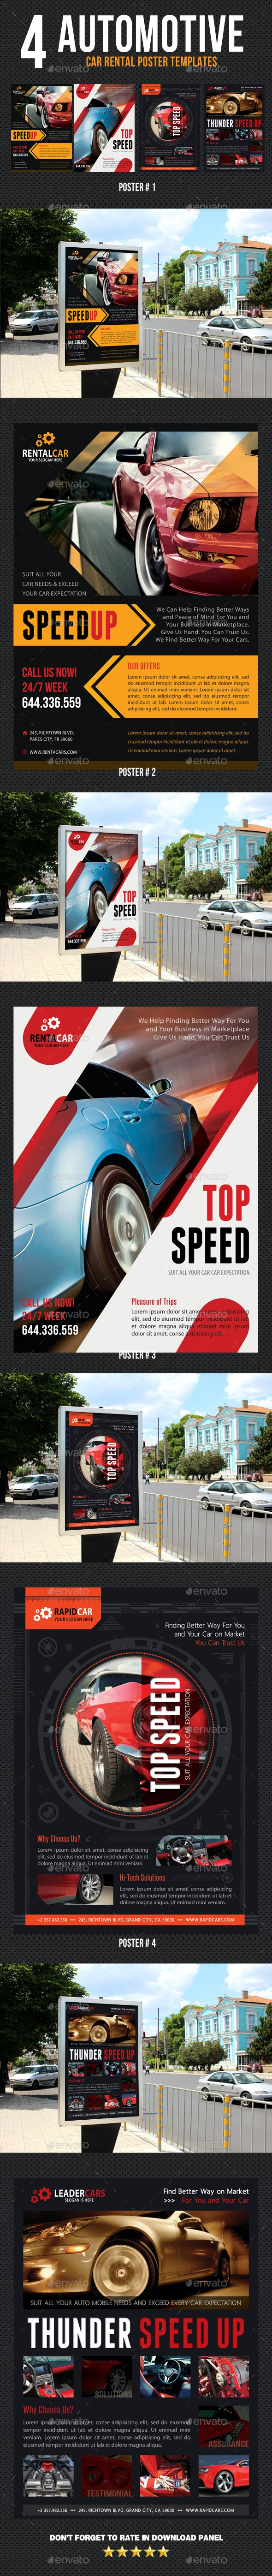 4 Automotive Car Rental Poster Bundle 02 - Signage Print Templates